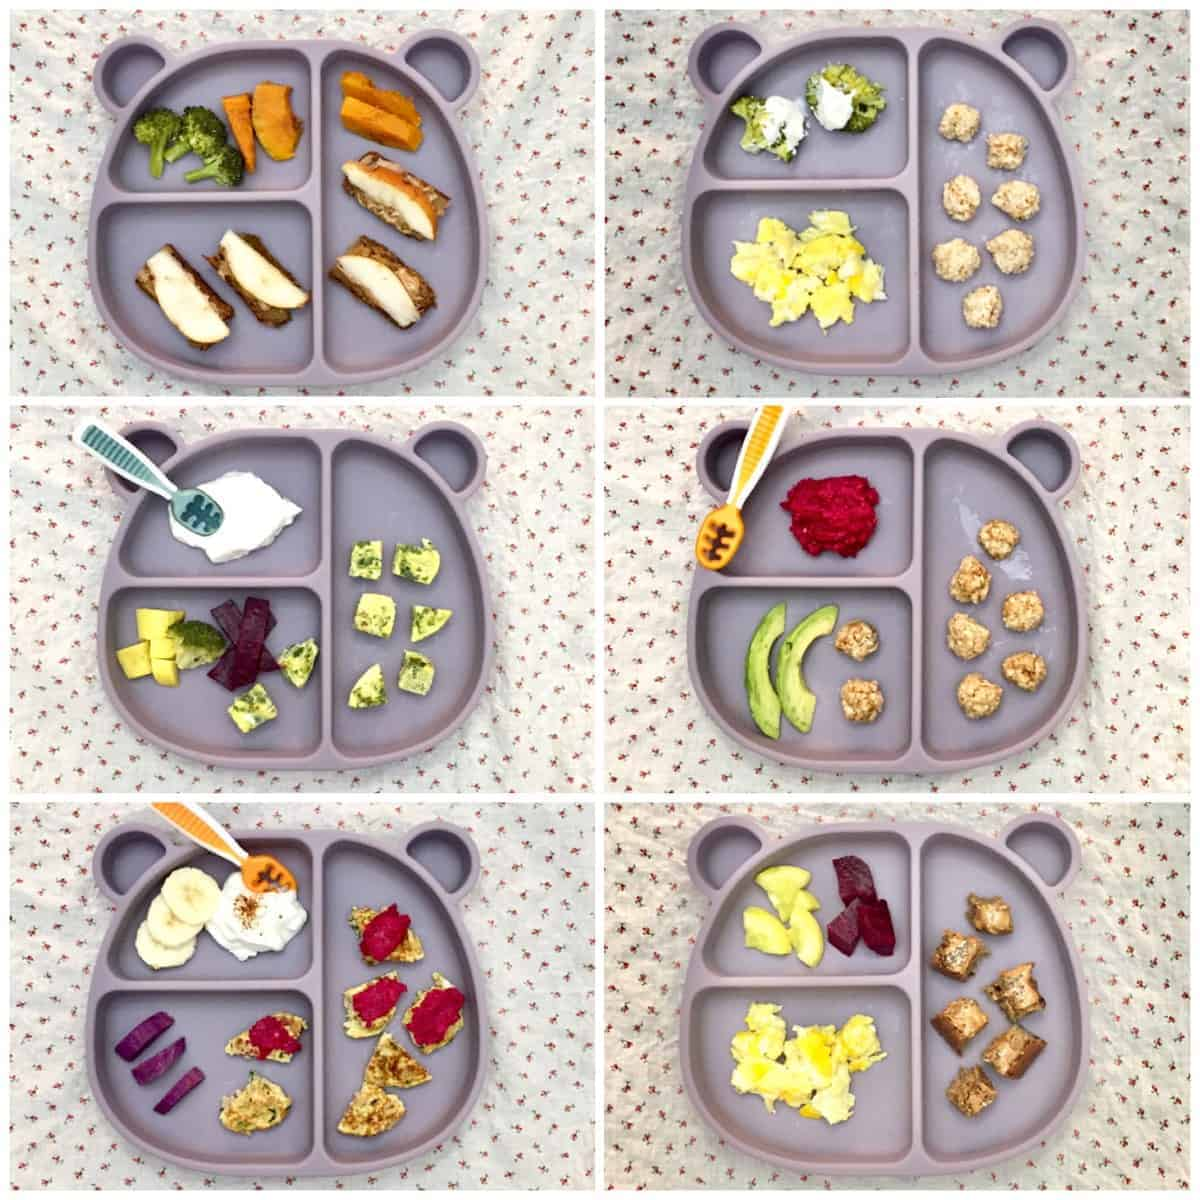 six breakfast ideas for 11 month old baby served on a blue bear shaped plate